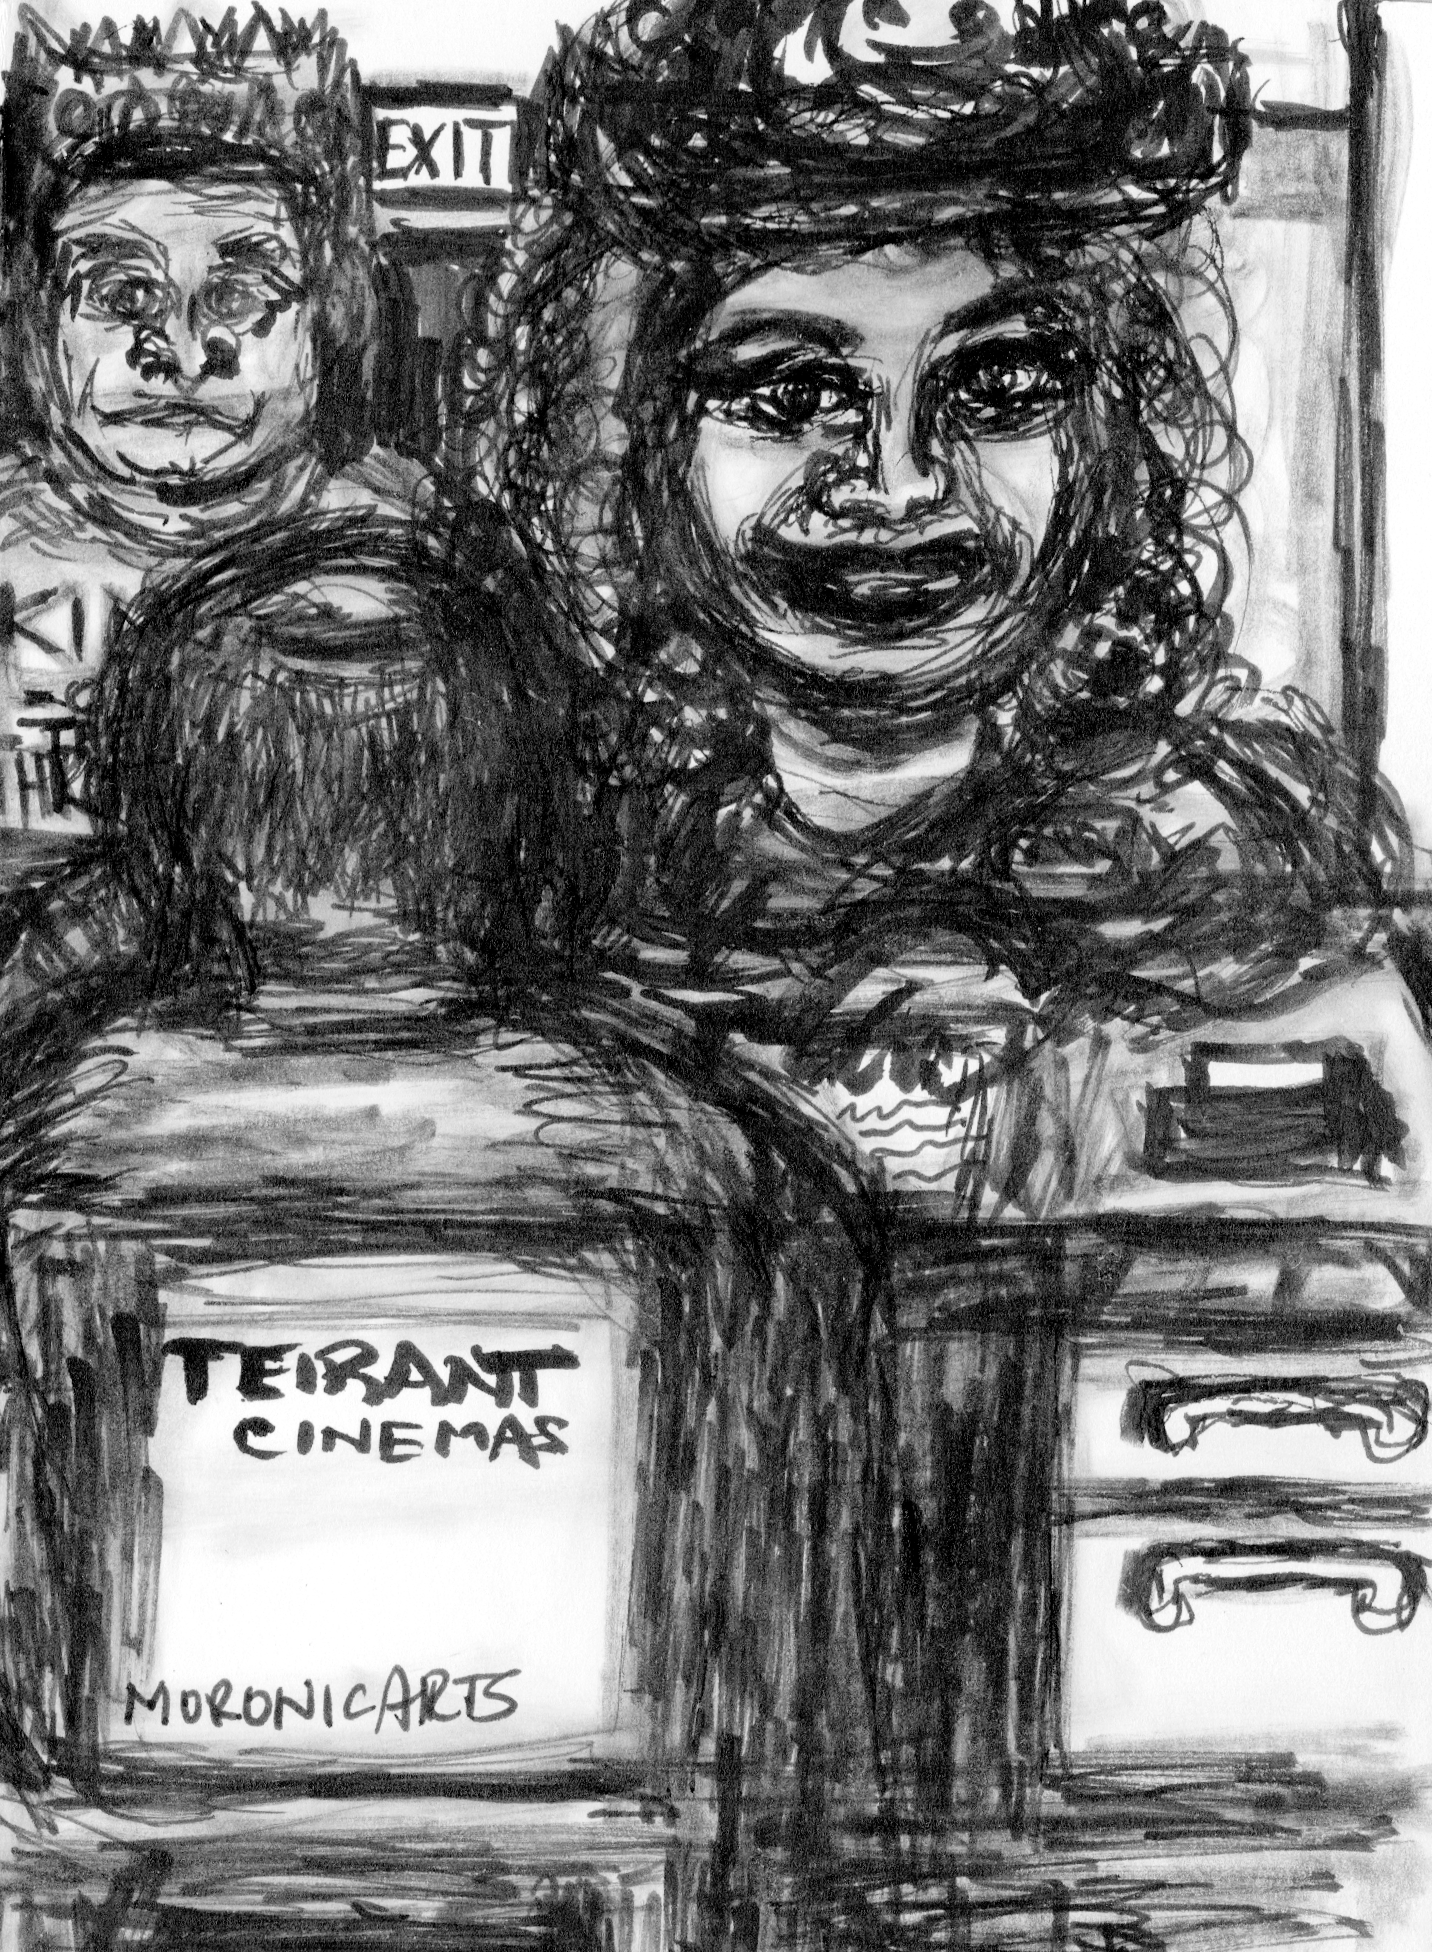 """Image: black-and-white cartoon set in an office. A man and a woman wearing crowns face a man sitting down on a chair with the text: """"Teirant Cinemas."""""""